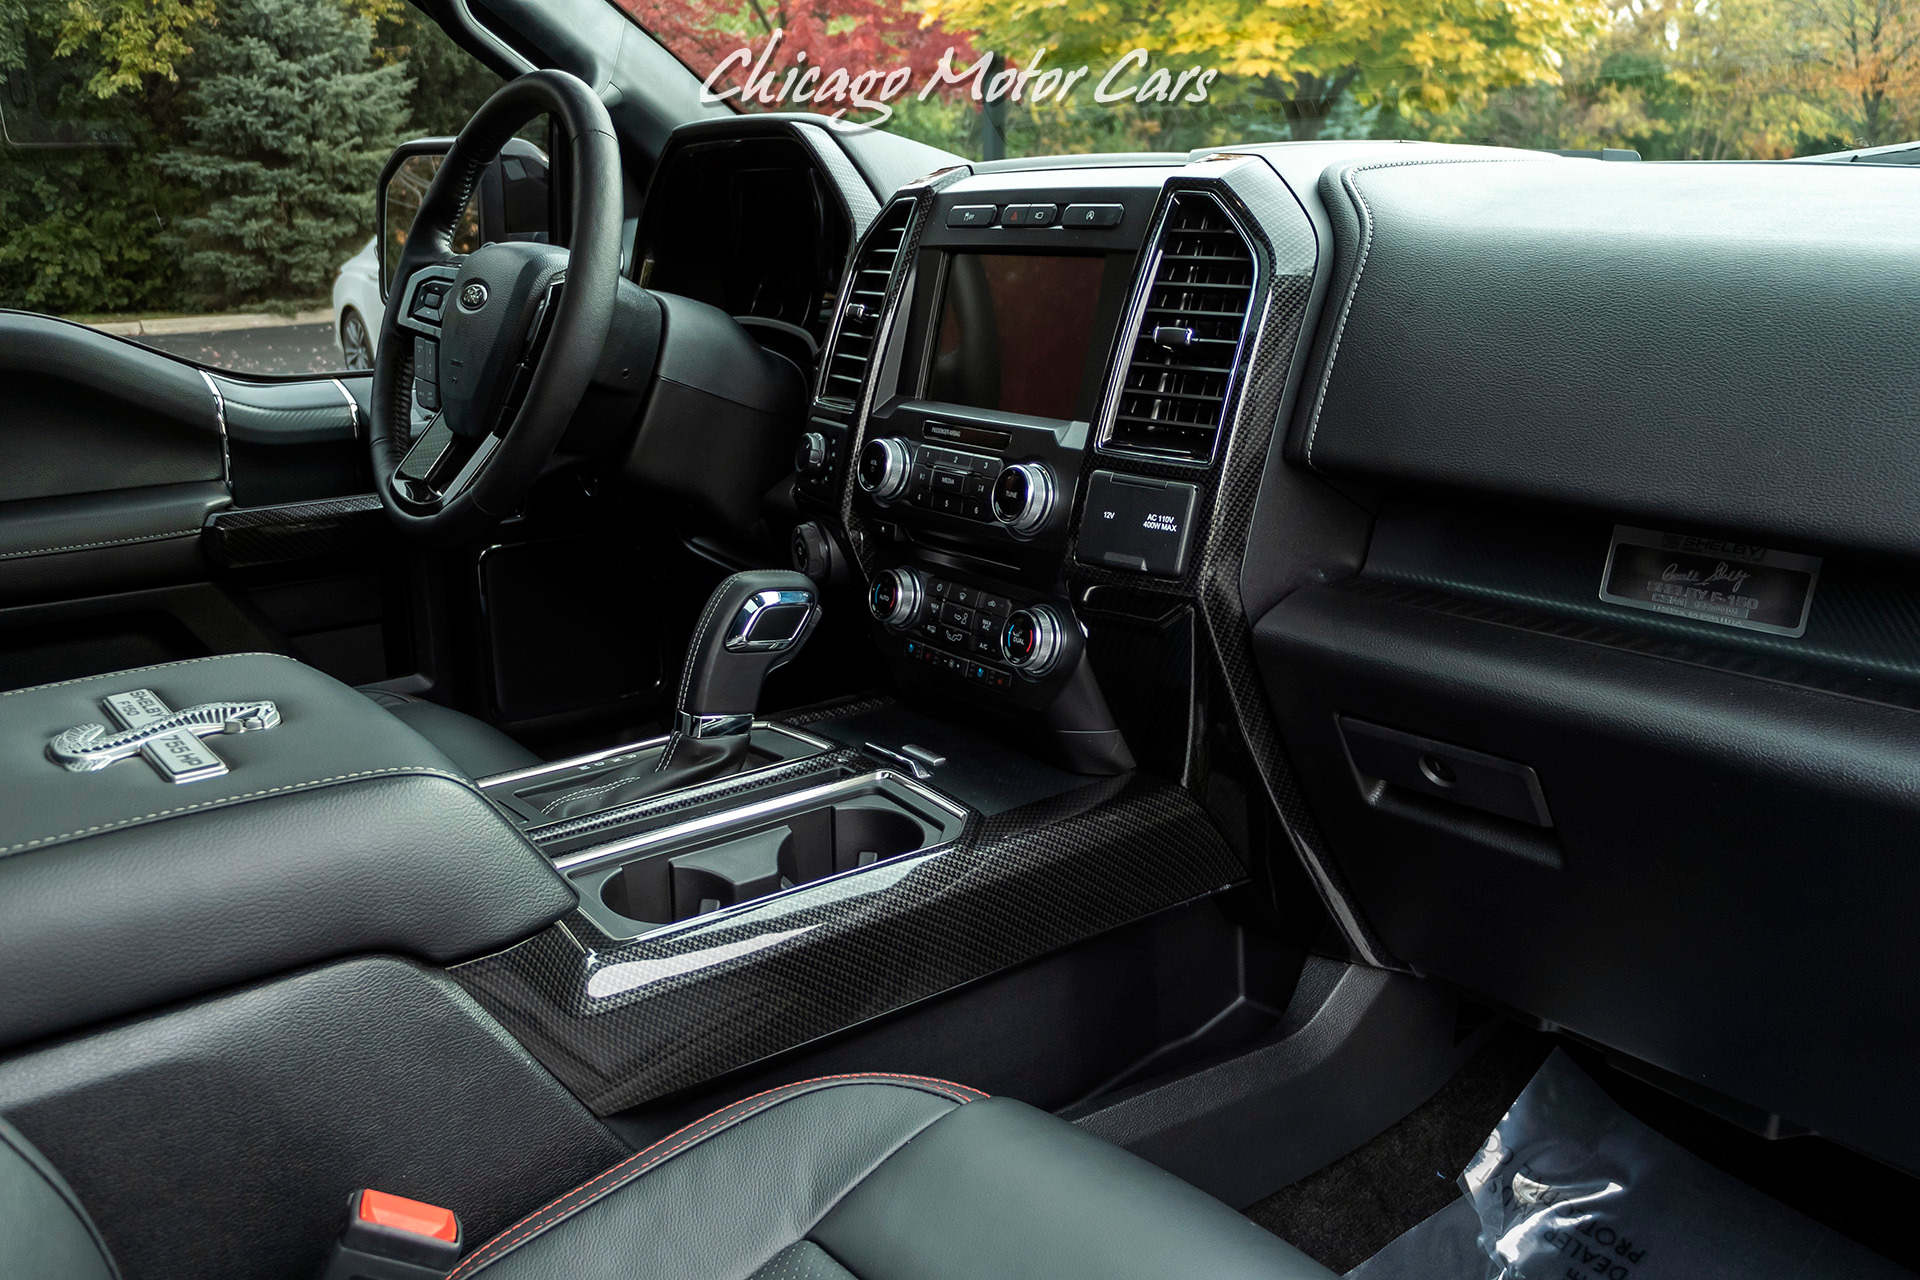 Used-2018-Ford-F-150-SHELBY-750-Horsepower-Only-340-Miles-1-of-500